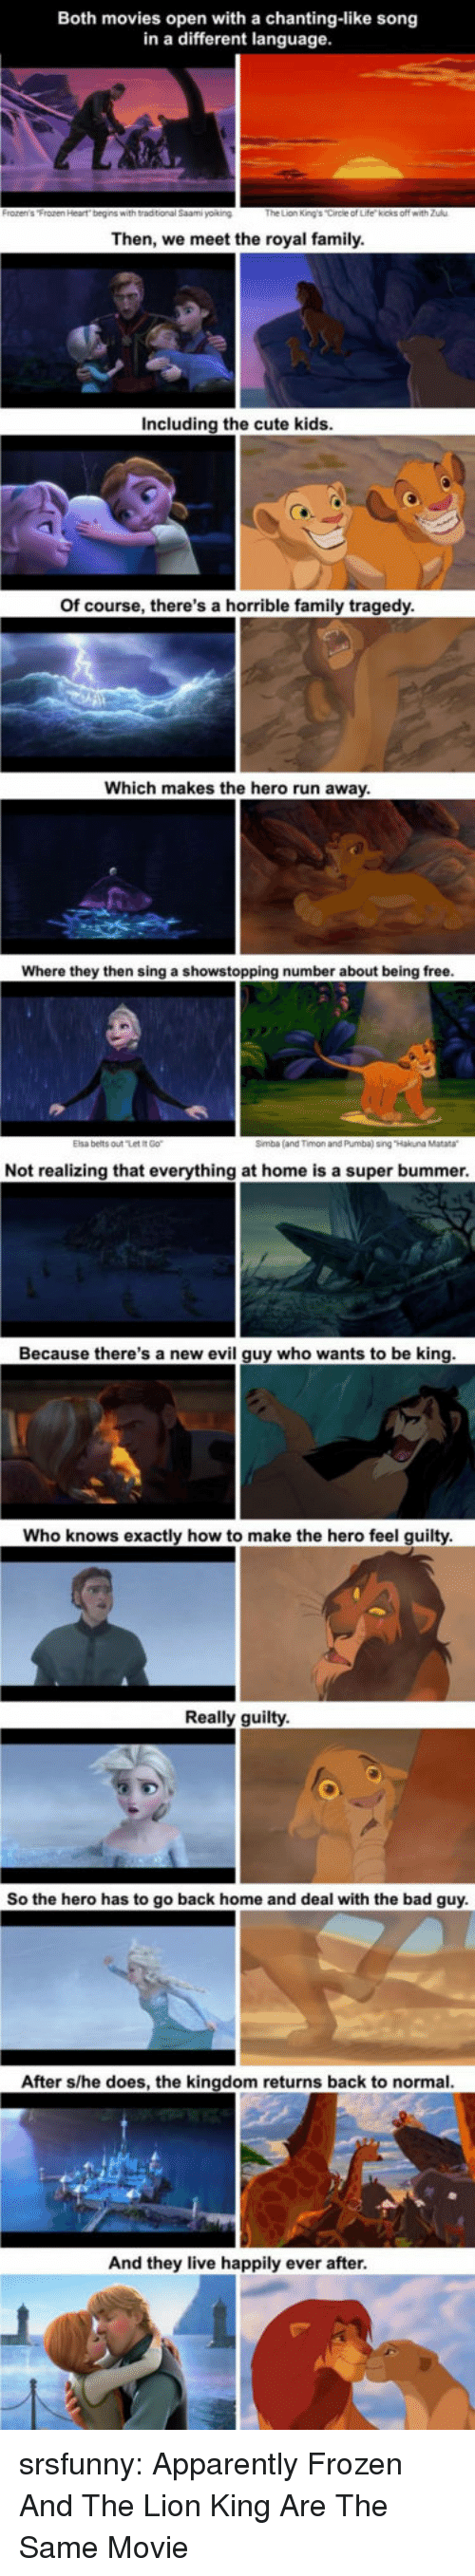 the kingdom: Both movies open with a chanting-like song  in a different language  Then, we meet the royal family  Including the cute kids  Of course, there's a horrible family tragedy  Which makes the hero run away  Where they then sing a showstopping number about being free  Elsa belts outt  Simba (and Timon and Pumba) sing Hakuna Matara  Not realizing that everything at home is a super bummer  Because there's a new evil guy who wants to be king  Who knows exactly how to make the hero feel guilty  Really guilty  So the hero has to go back home and deal with the bad guy  After s/he does, the kingdom returns back to normal  And they live happily ever after srsfunny:  Apparently Frozen And The Lion King Are The Same Movie